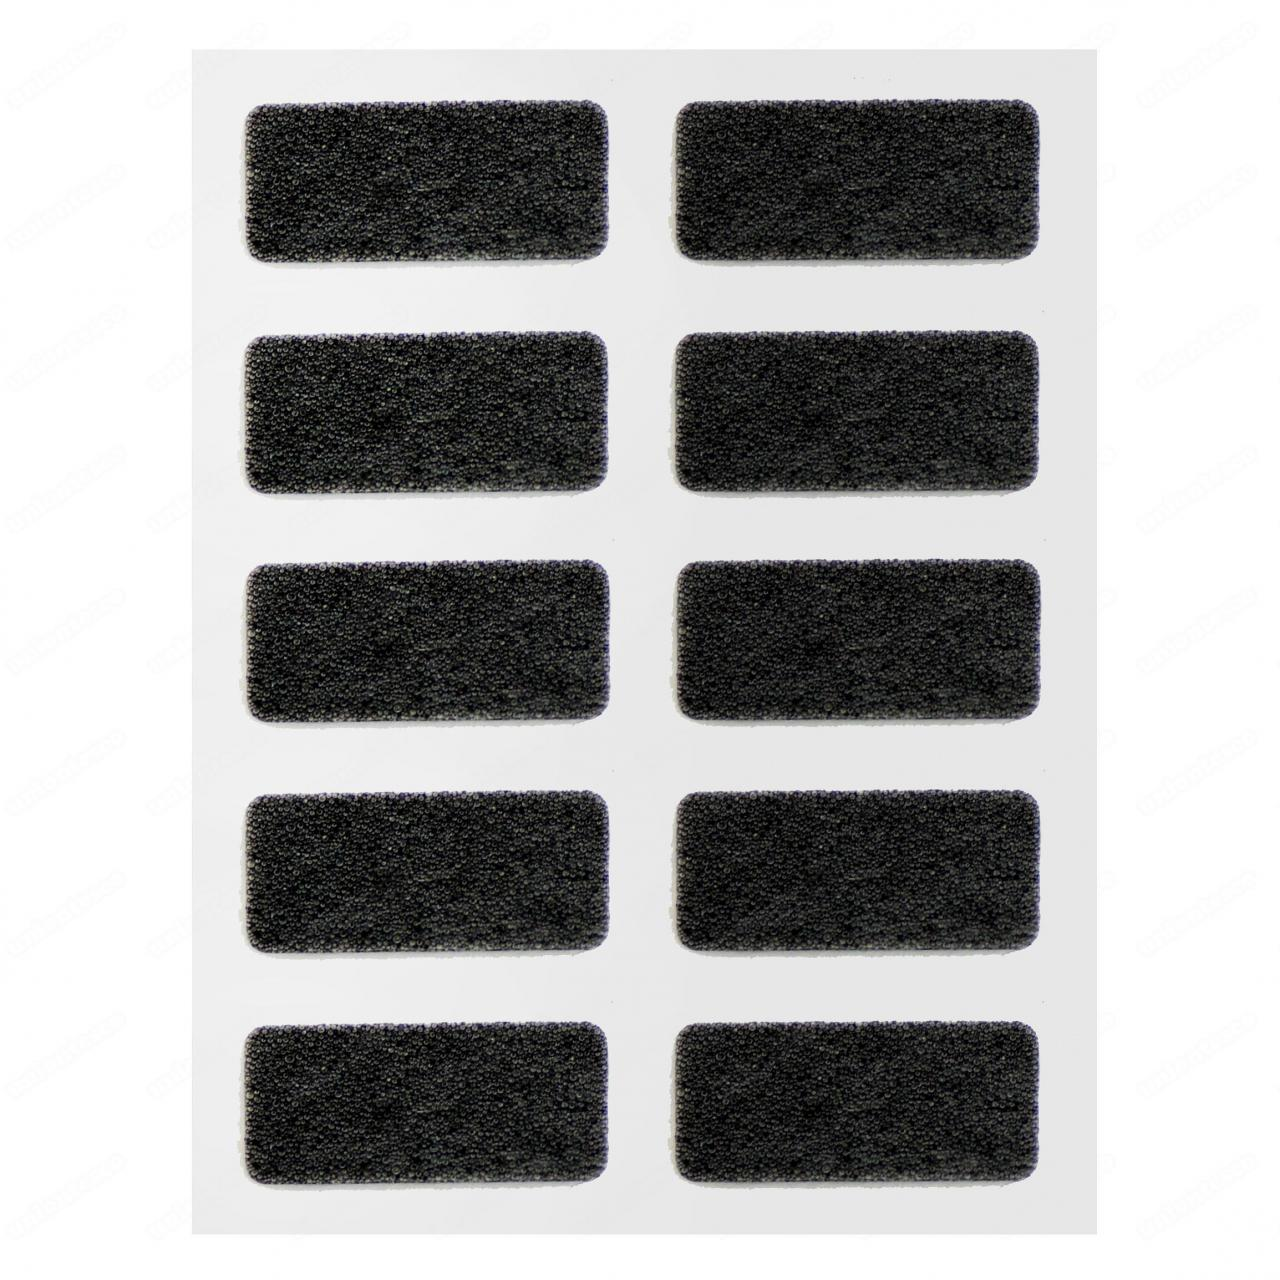 China iPhone 4S Digitizer Connector Foam Pad on sale